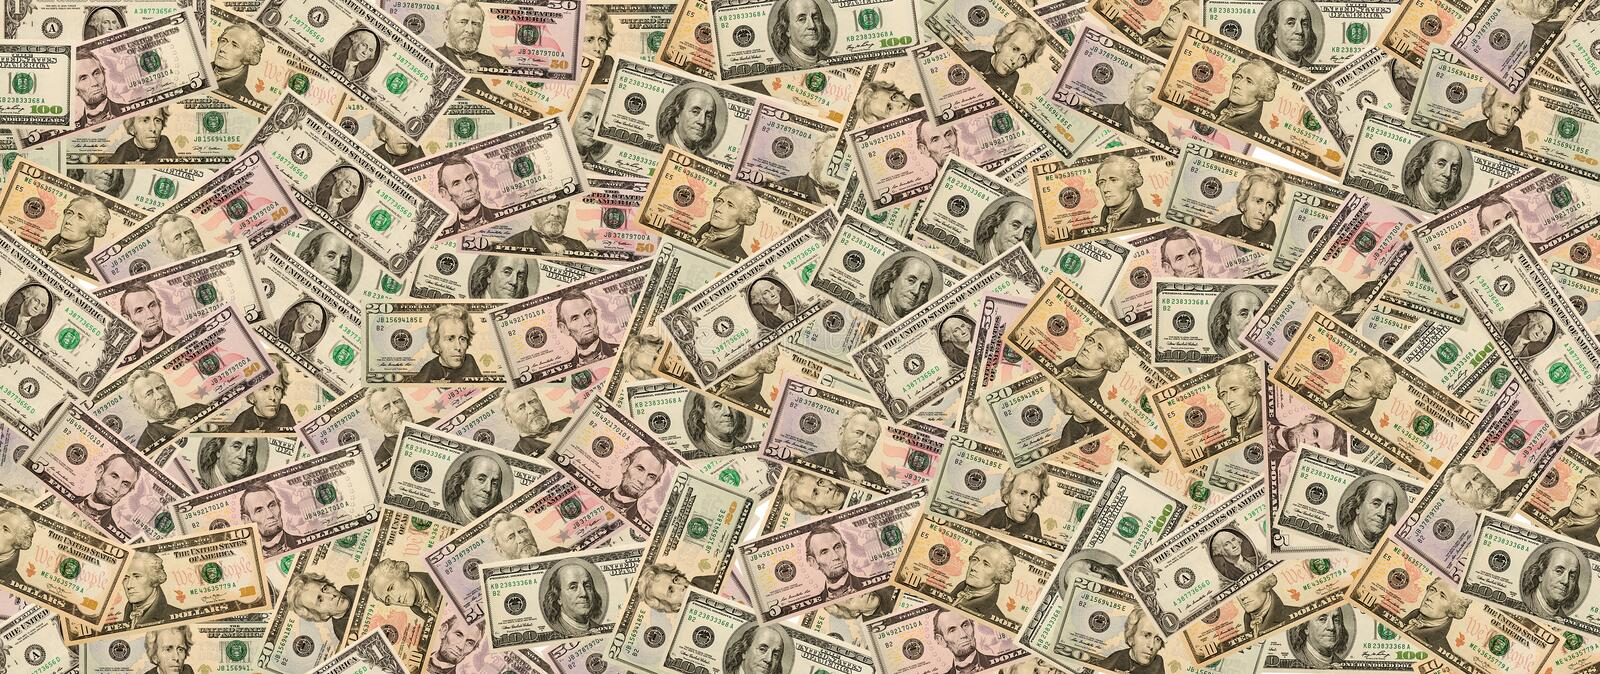 Lot of cash US dollars in the background. royalty free illustration